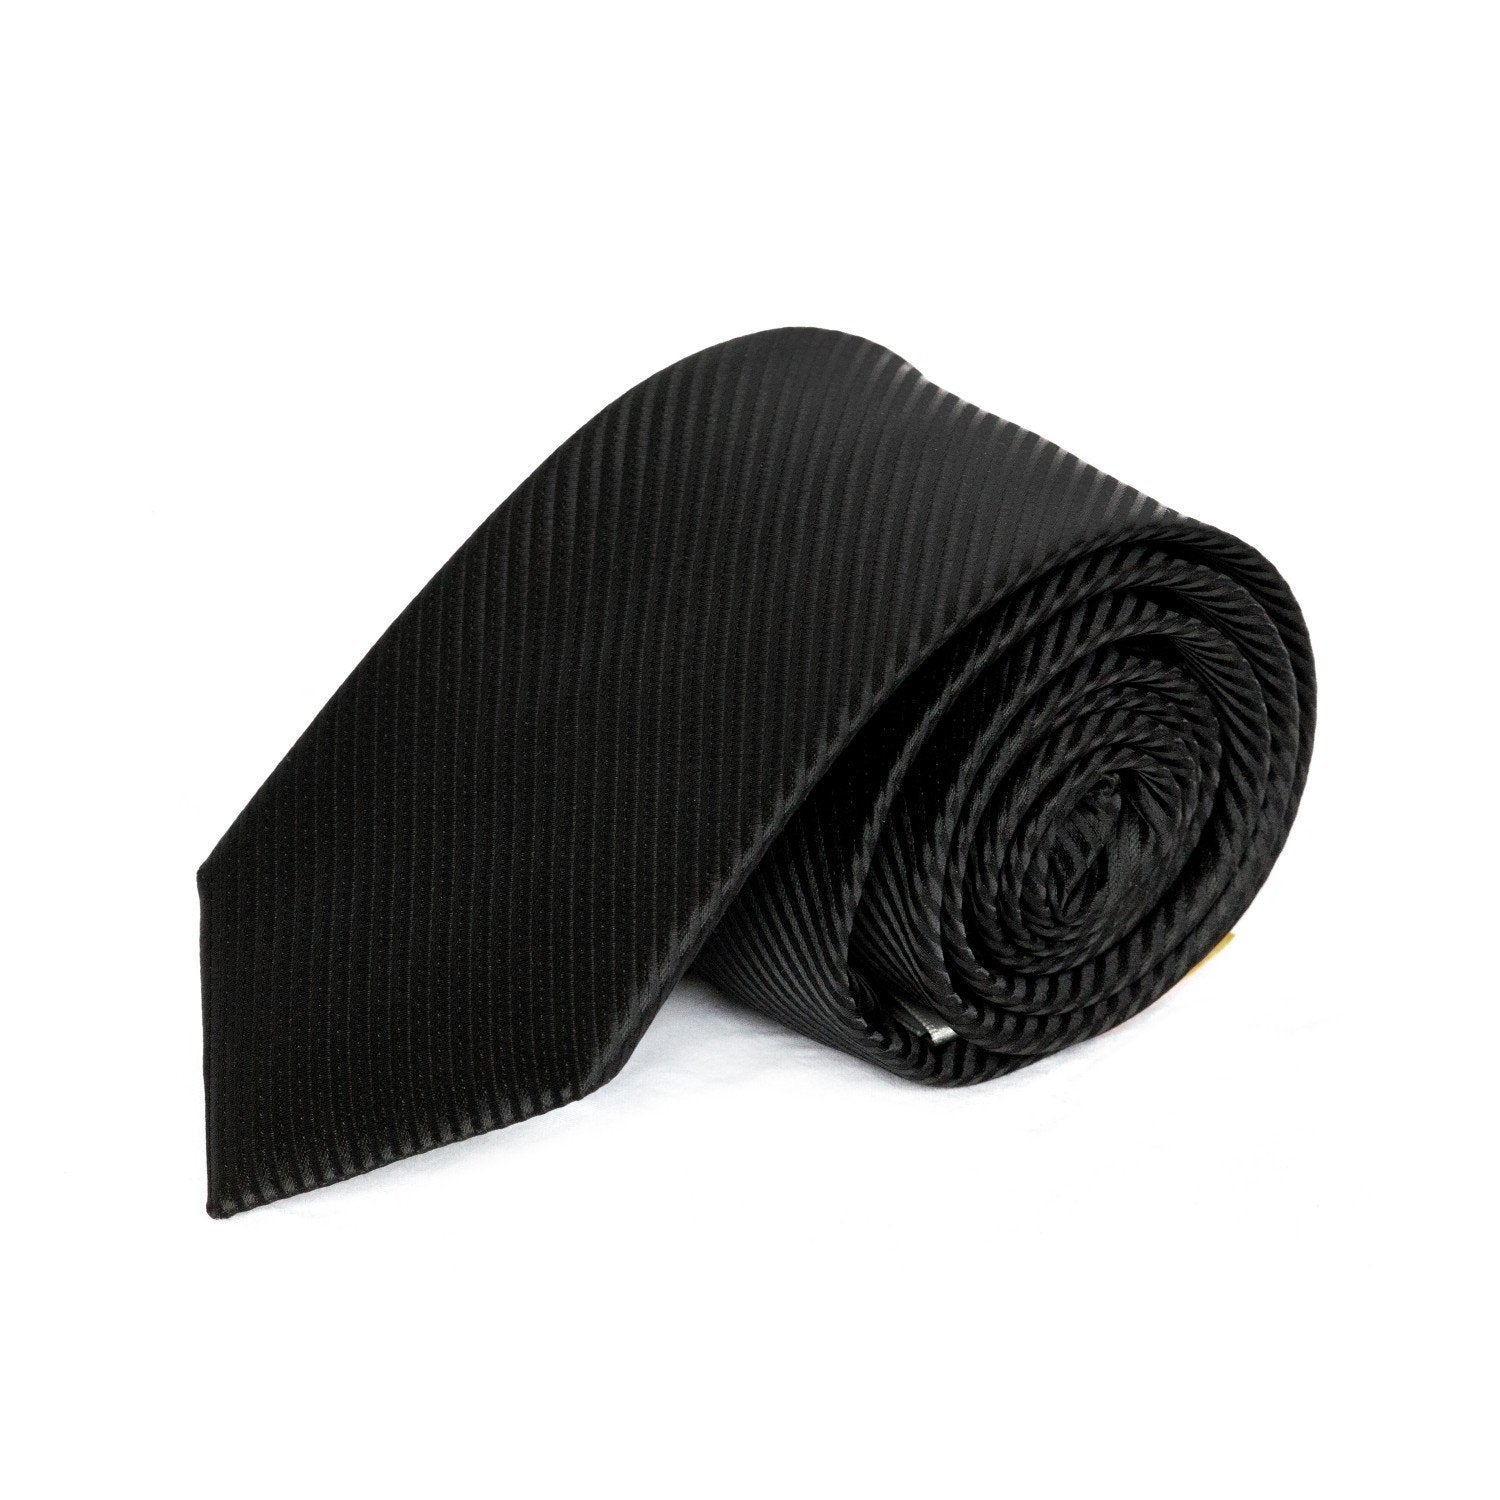 Black Diagonal Textured MF Tie Ties Cuffed.com.au